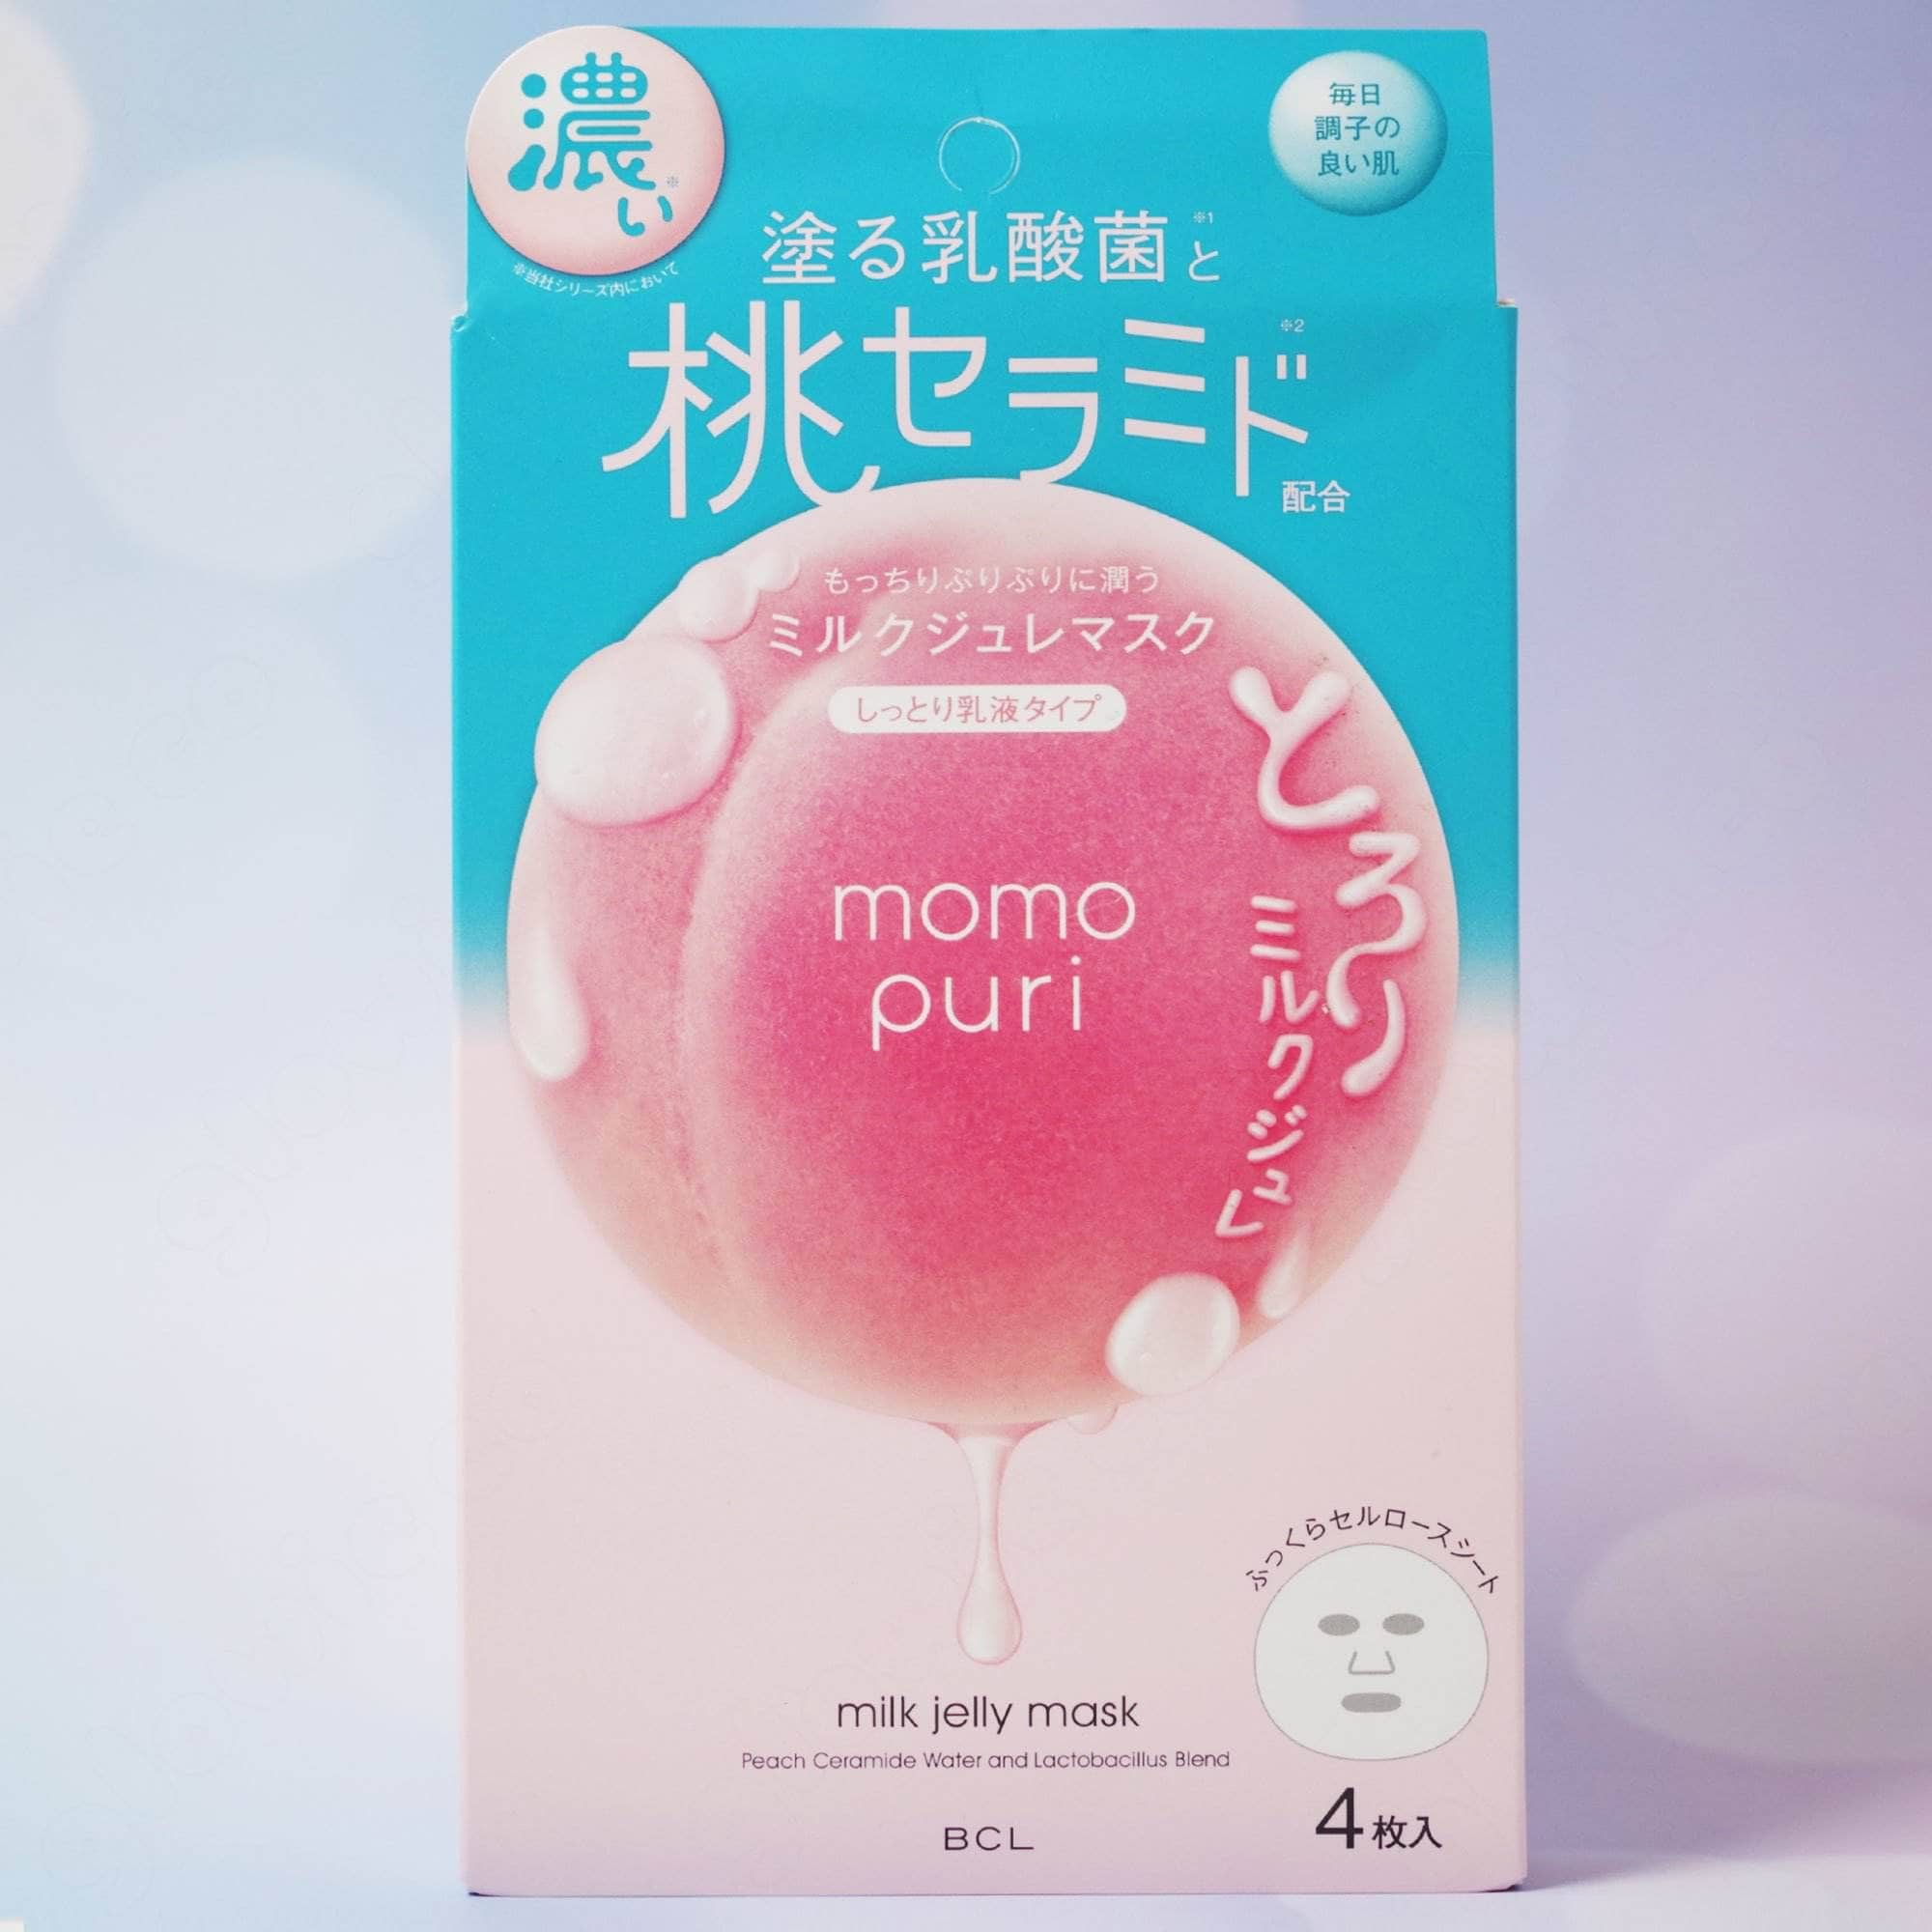 Momopuri Milk Jelly Mask